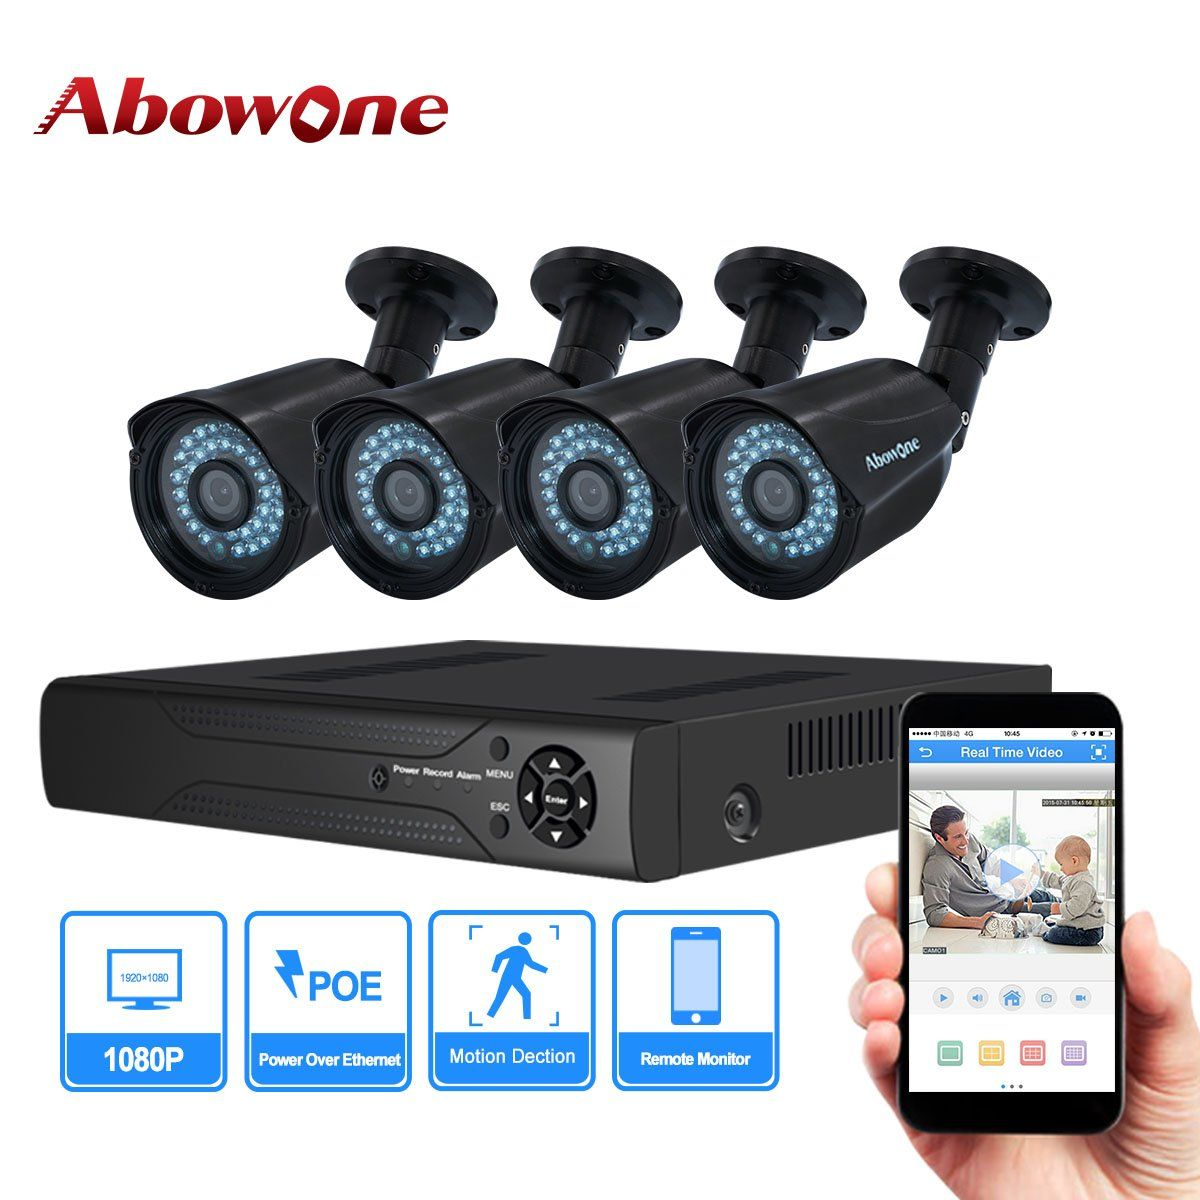 Abowone 1080p Poe Security Cameras System With 4ch 2 0mp Standard Poe Cameras Home Security Camera Systems Security Cameras For Home Security Camera System